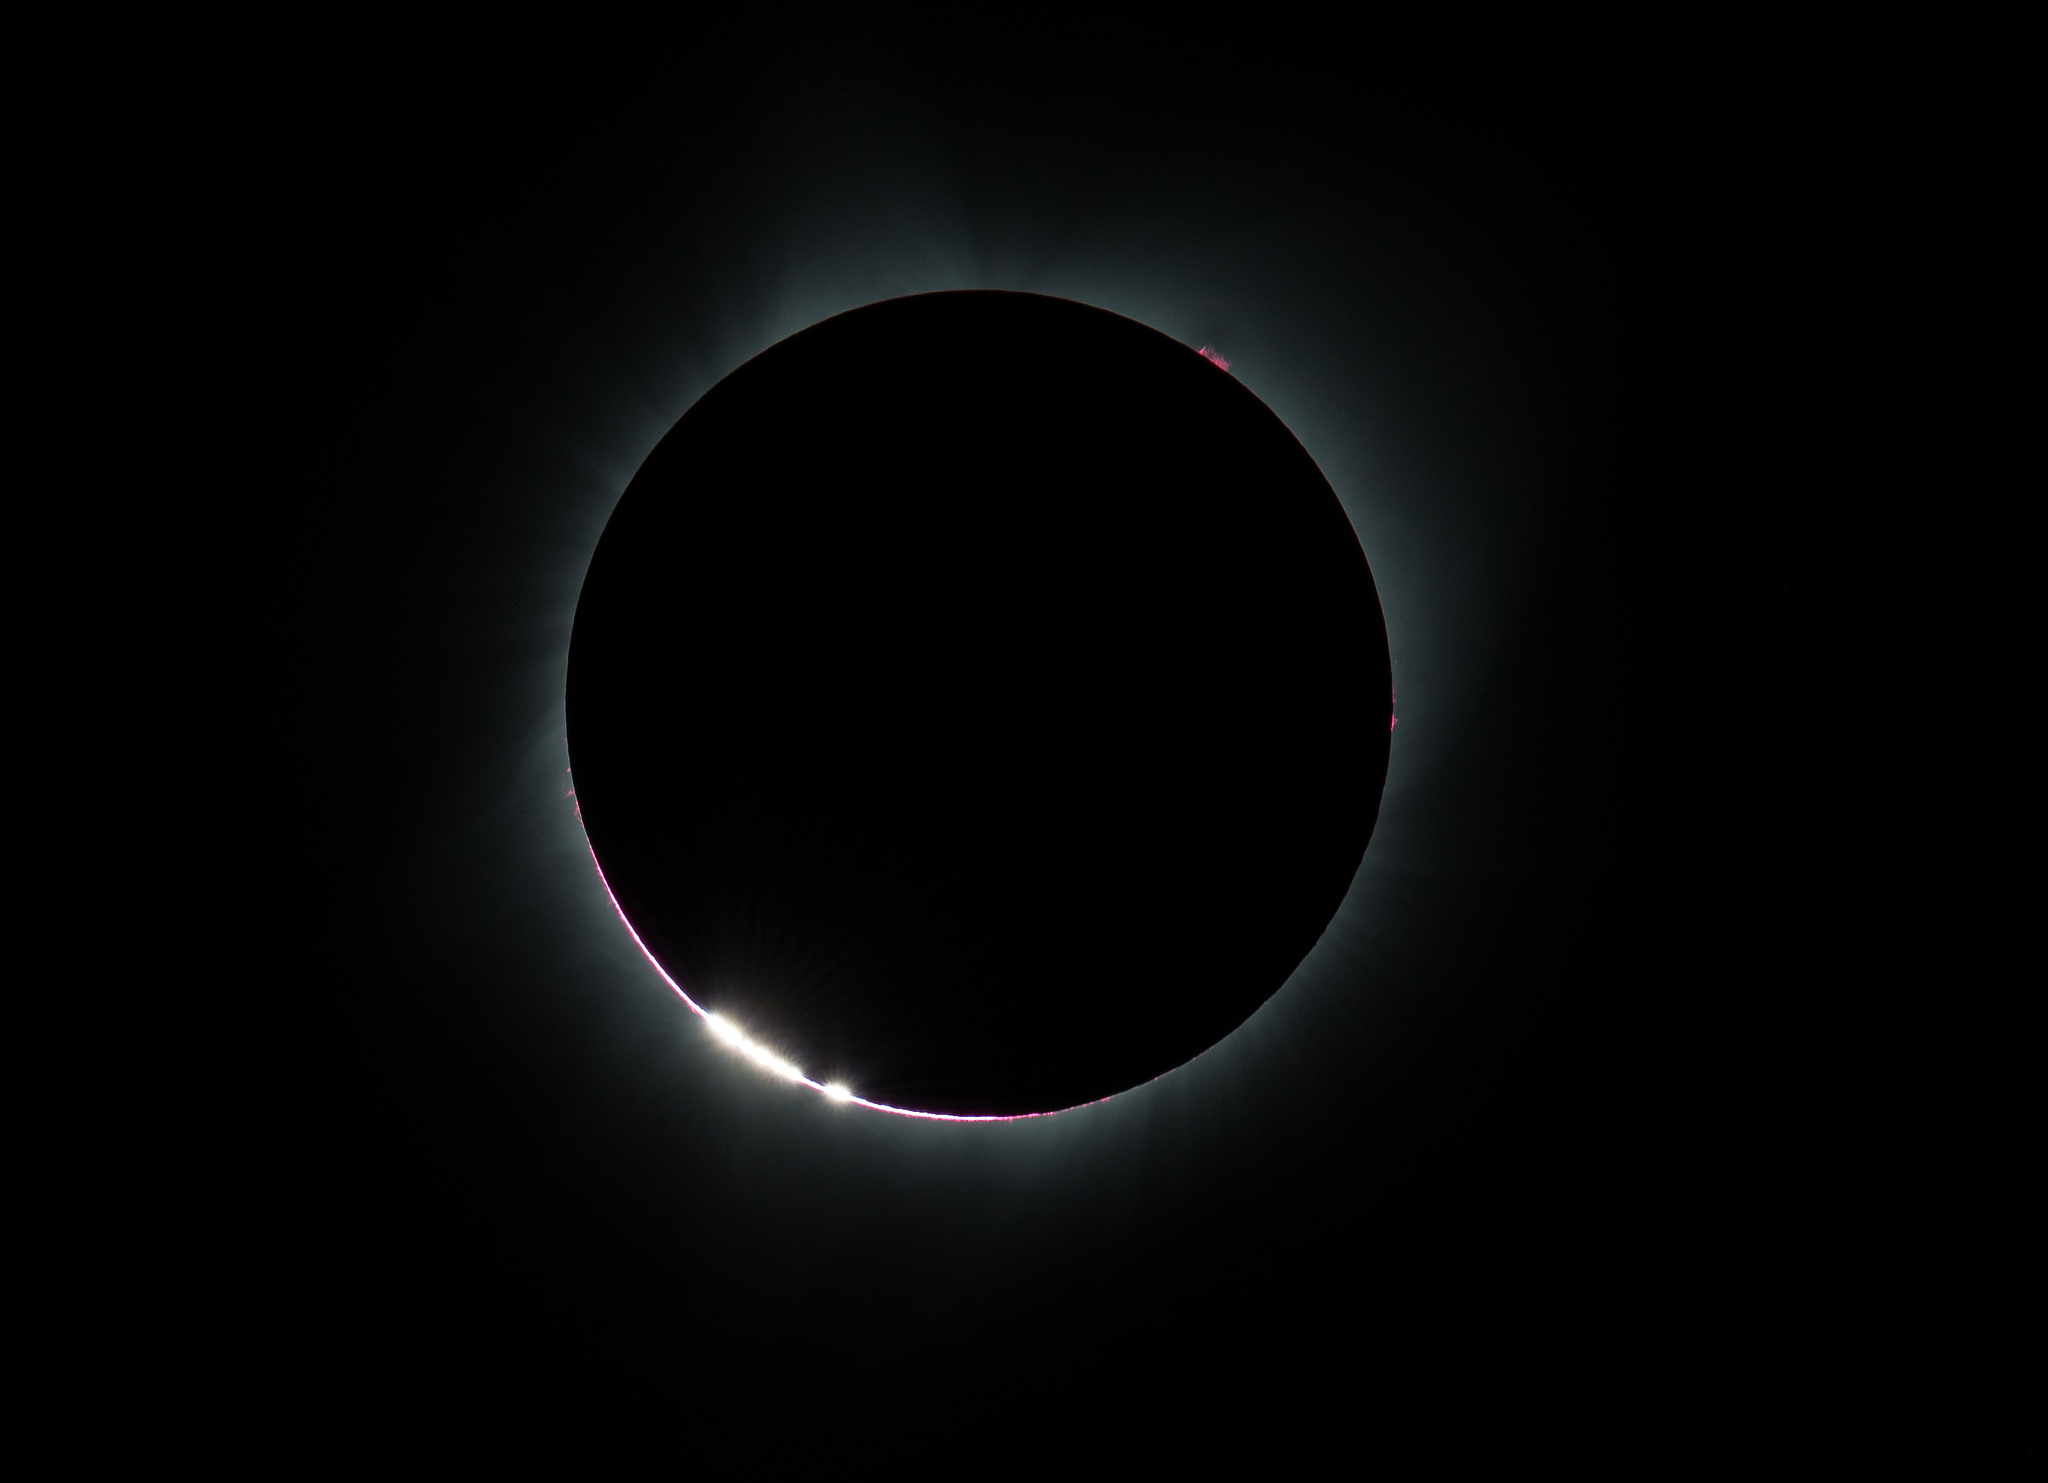 Just before totality